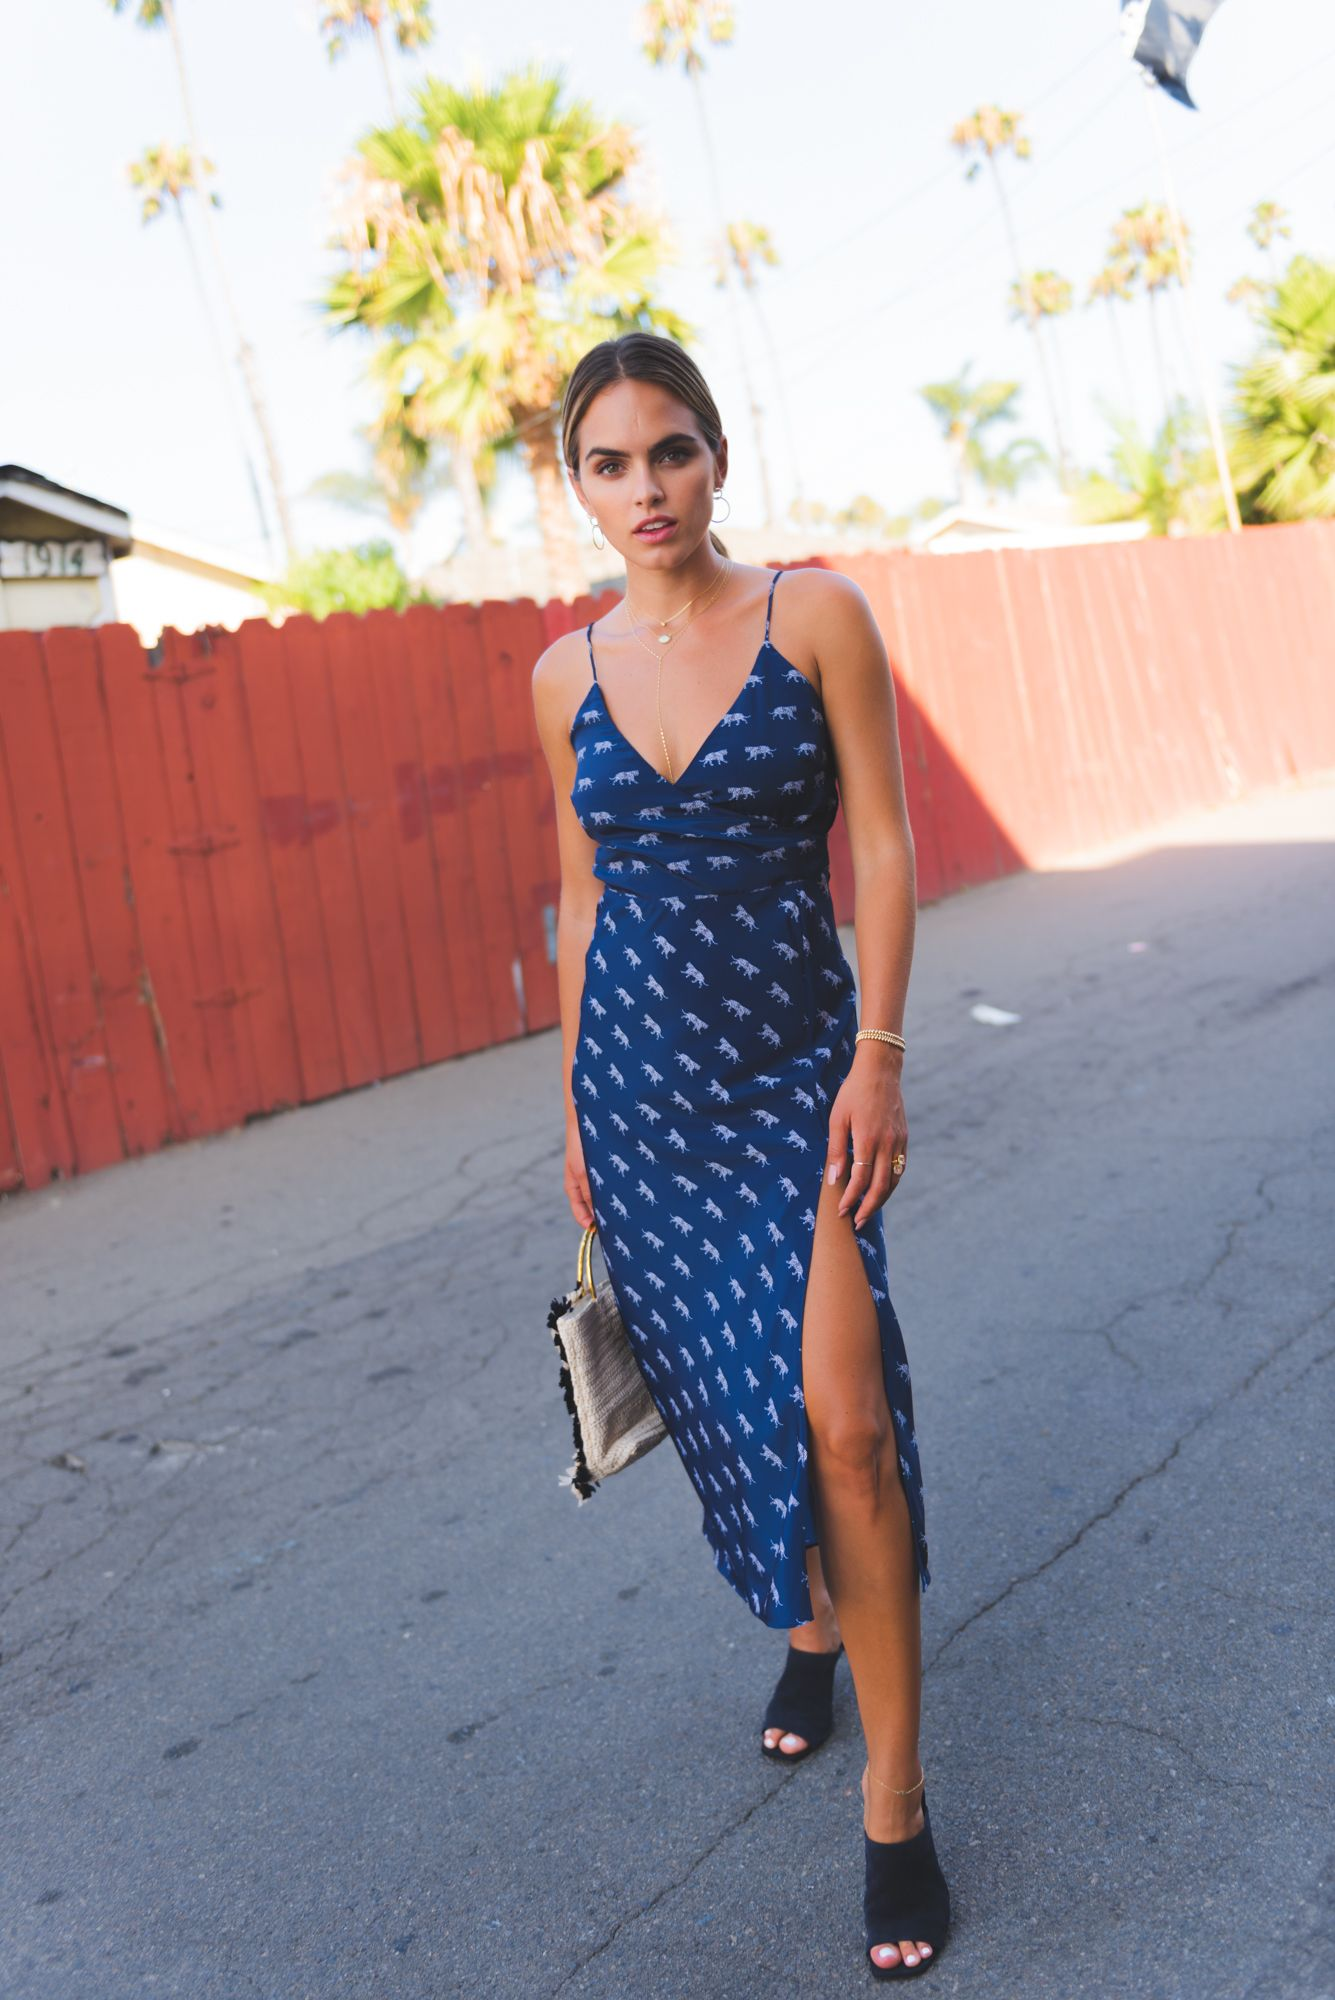 7d4e7032d0468 Accessorized Outfit Ideas: Cleobella Revel Slip Dress Tiger Godess Animal  Print Midi Slip Dress Transitional Style Summer Style Summer Street Style  Layered ...